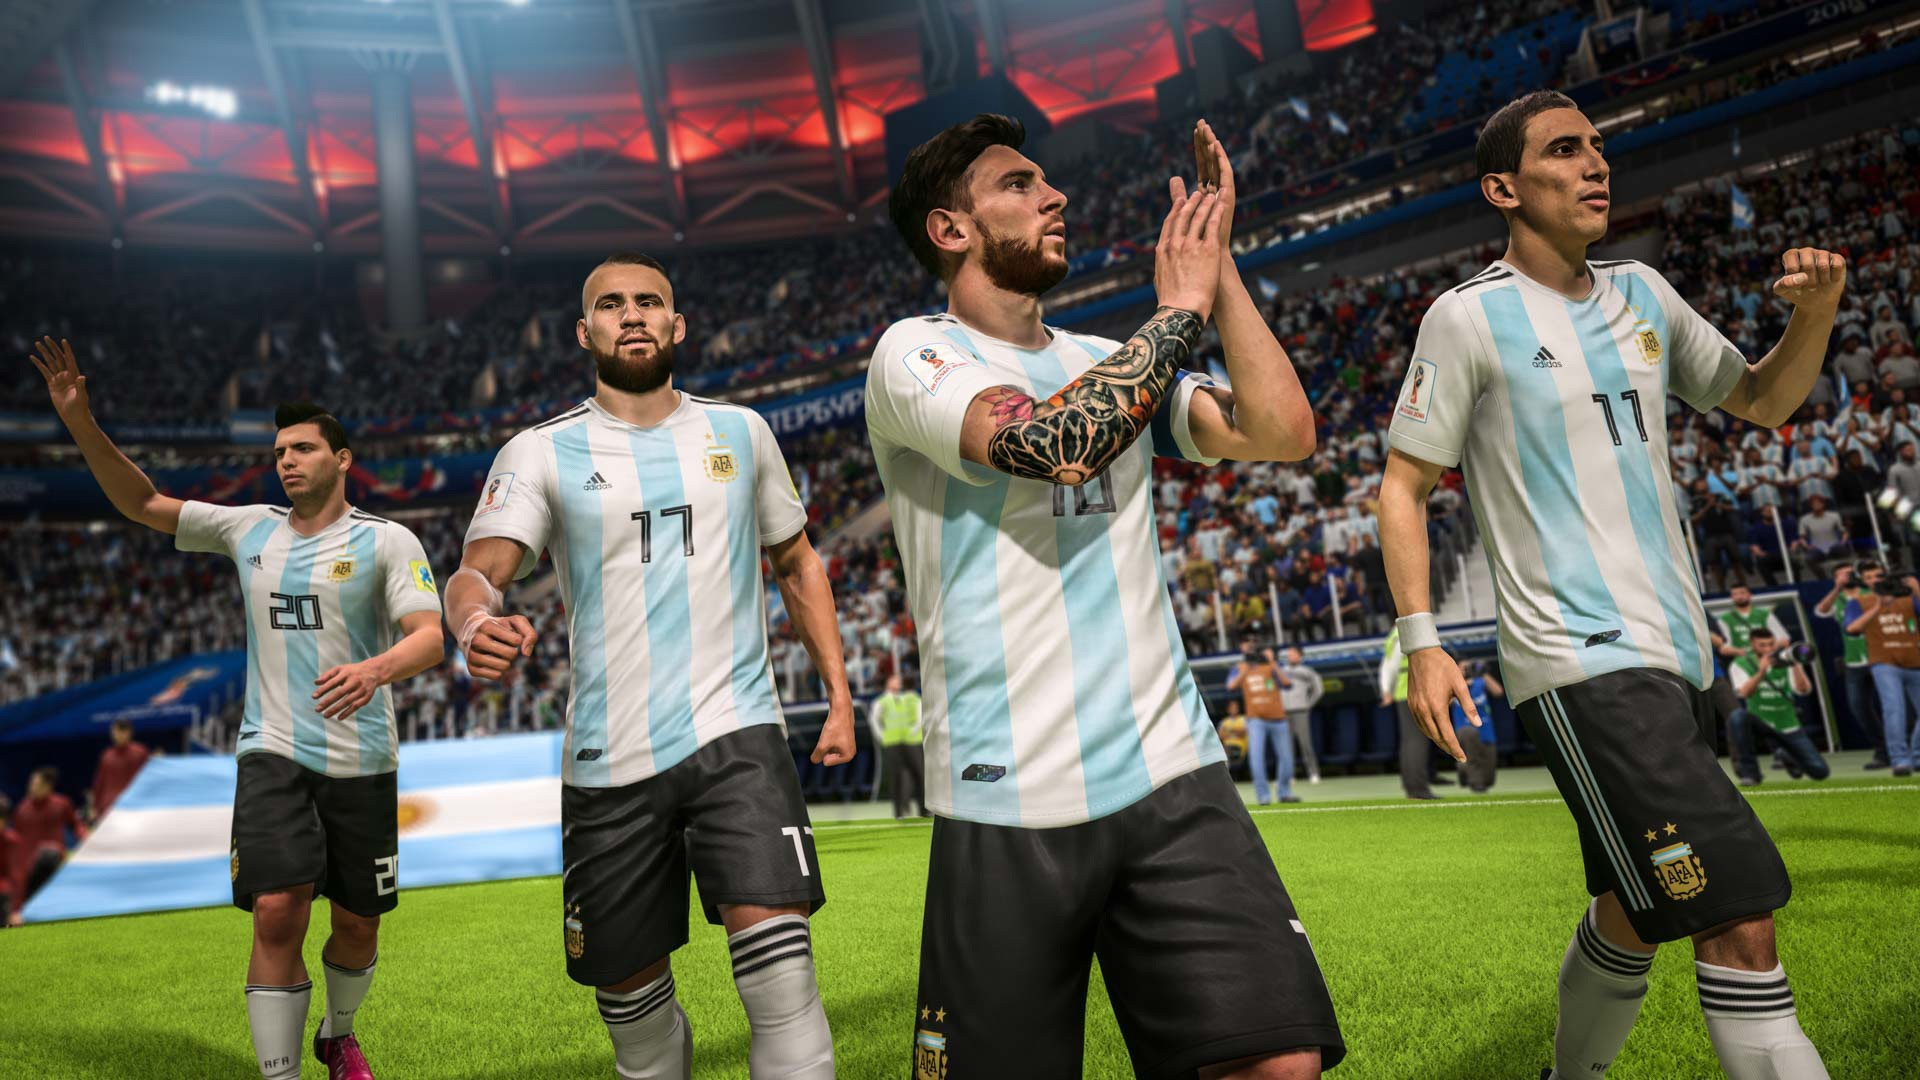 https://data1.origin.com/content/dam/originx/web/app/games/fifa/fifa-18/screenshots/FIFA18_WC_GDP_screenshot_argentina_walkout.jpg